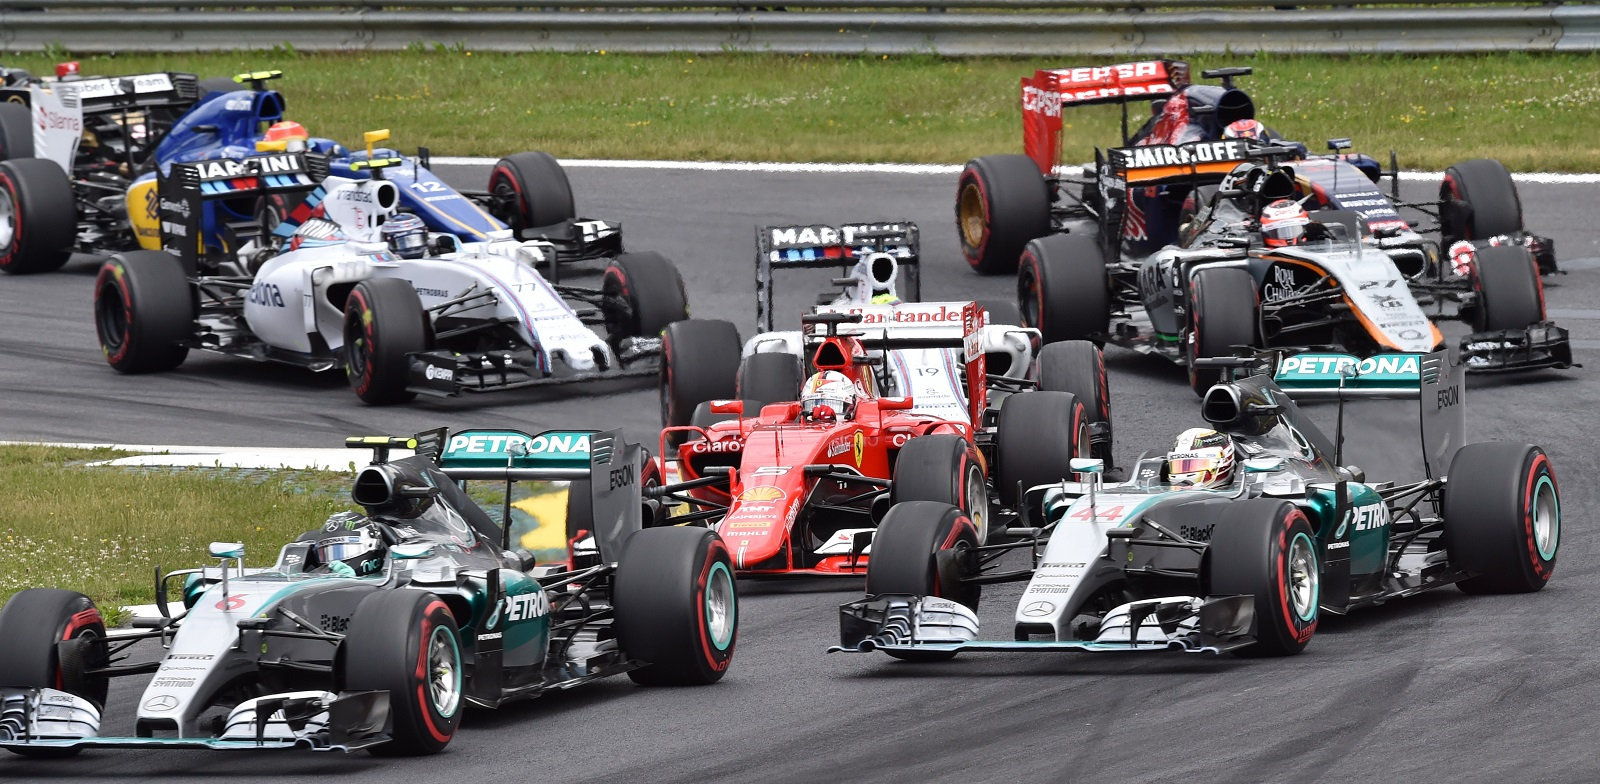 Start of the Austrian F1 Grand Prix